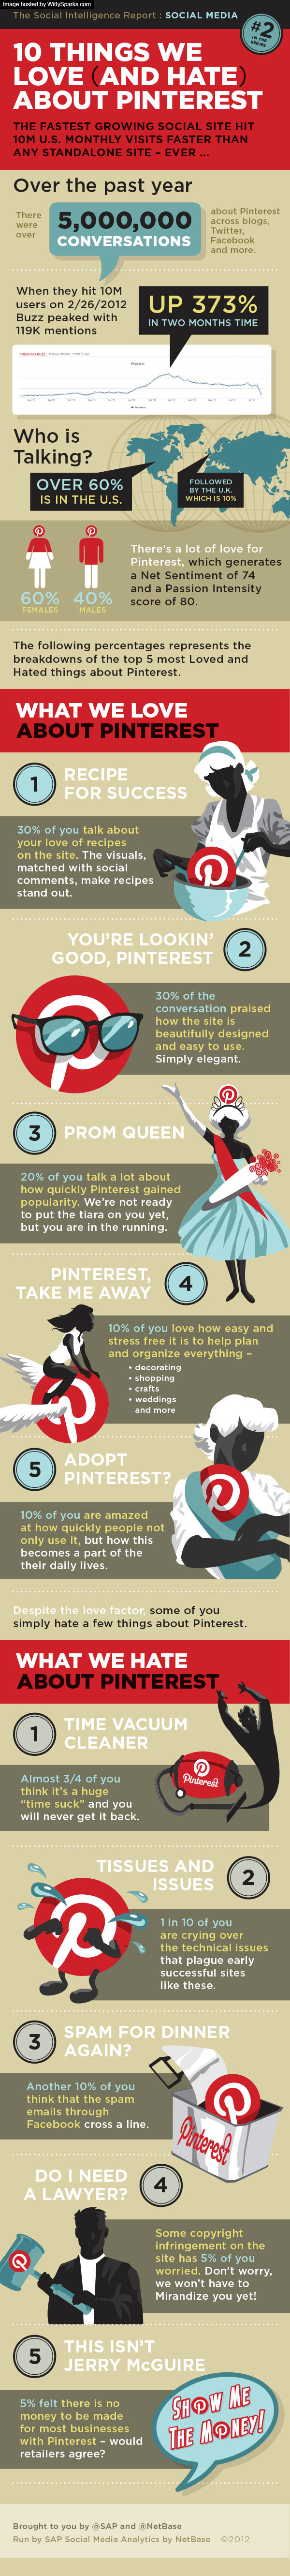 10 Things we love and hate about Pinterest - infographic